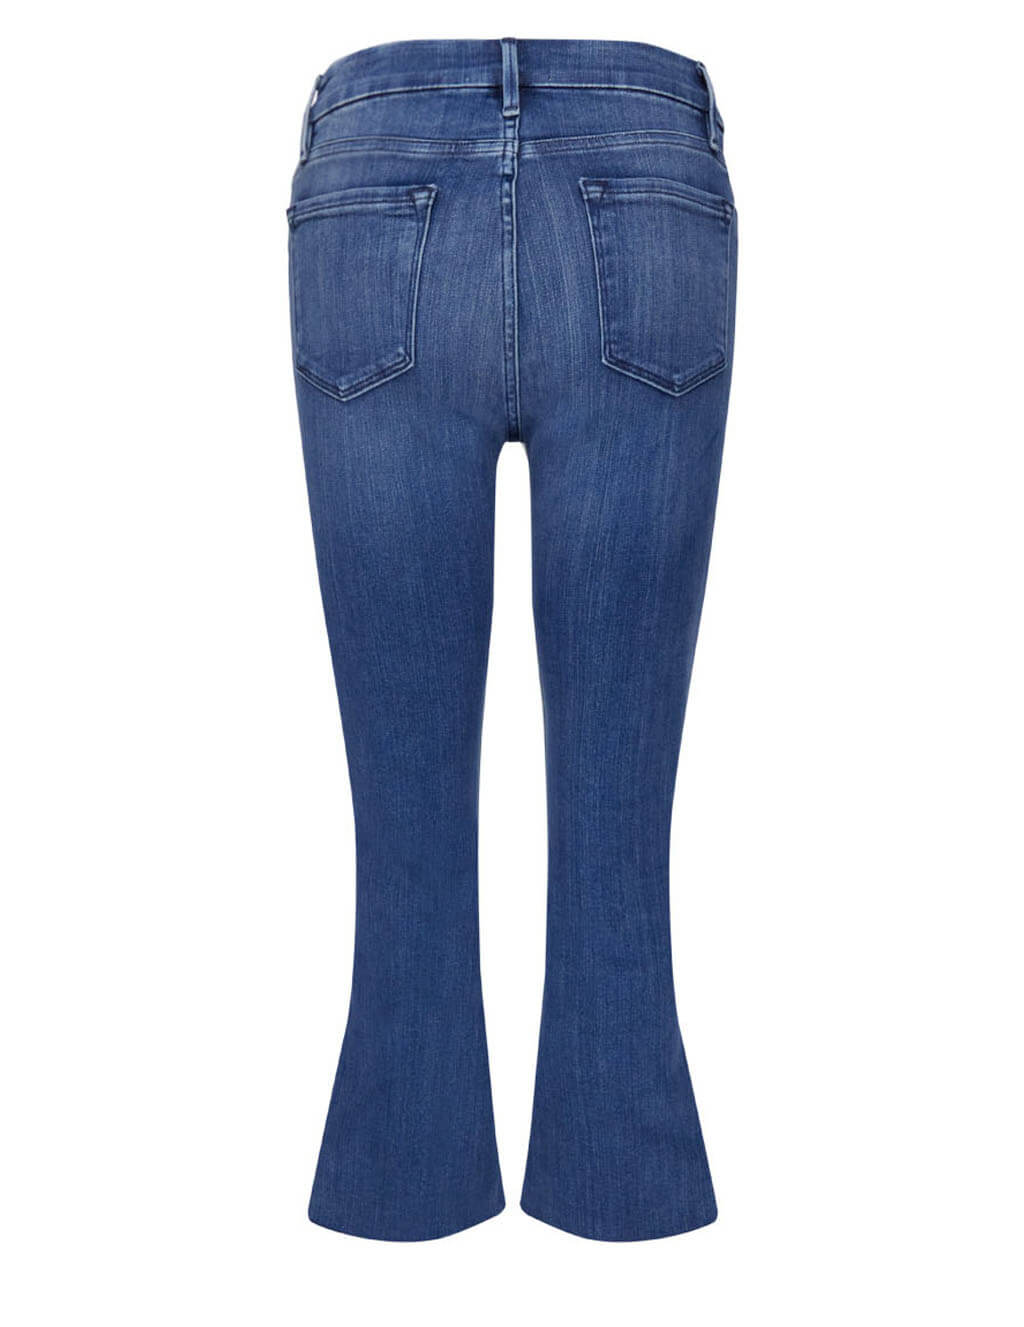 FRAME Women's Giulio Fashion Blue Le Cropped Mini Boot Raw Edge Jeans LCMBRA214-EDGW